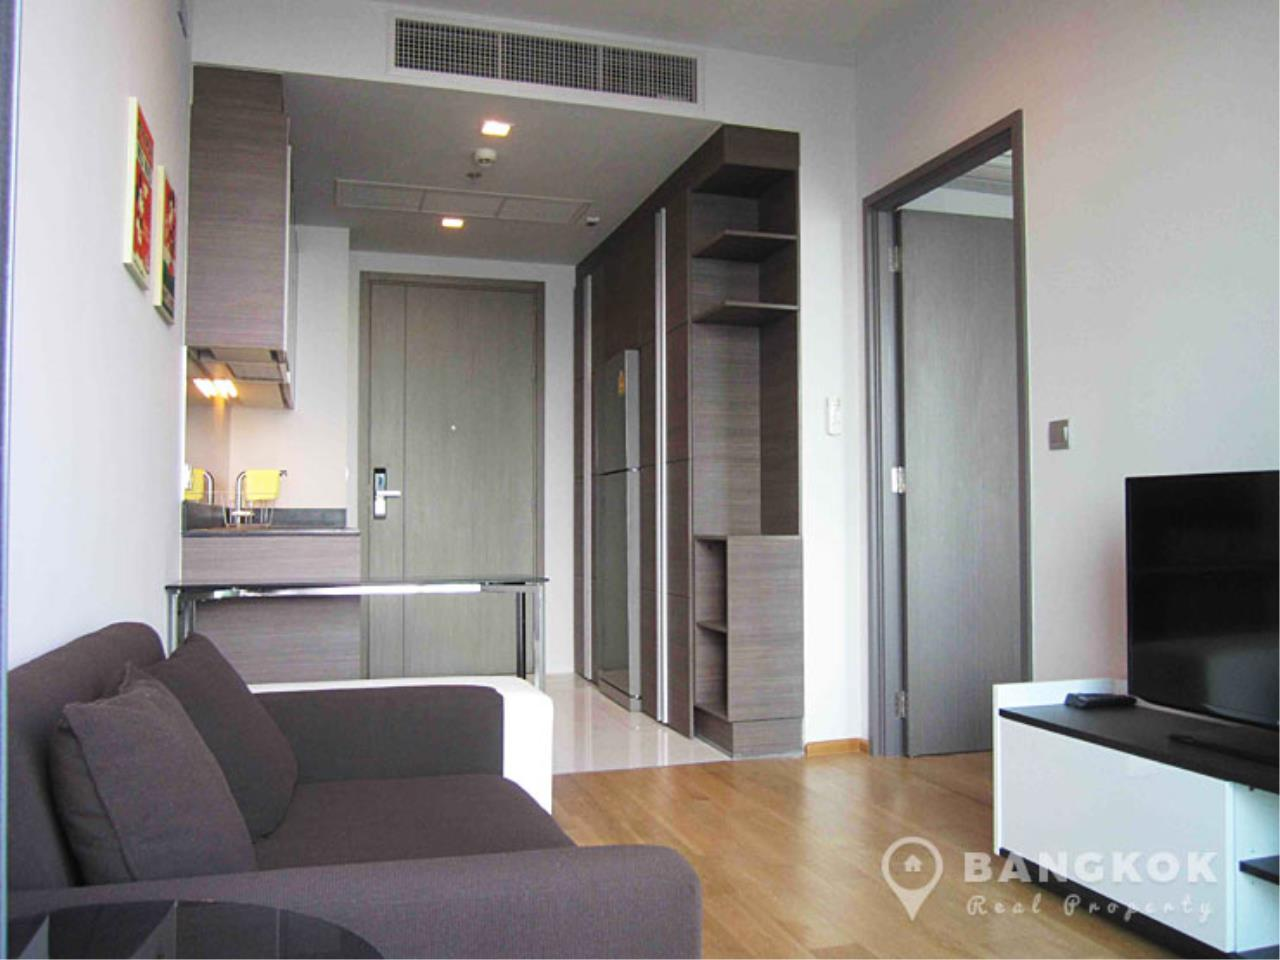 Bangkok Real Property Agency's Keyne by Sansiri | Modern High Floor 1 Bed near BTS 1